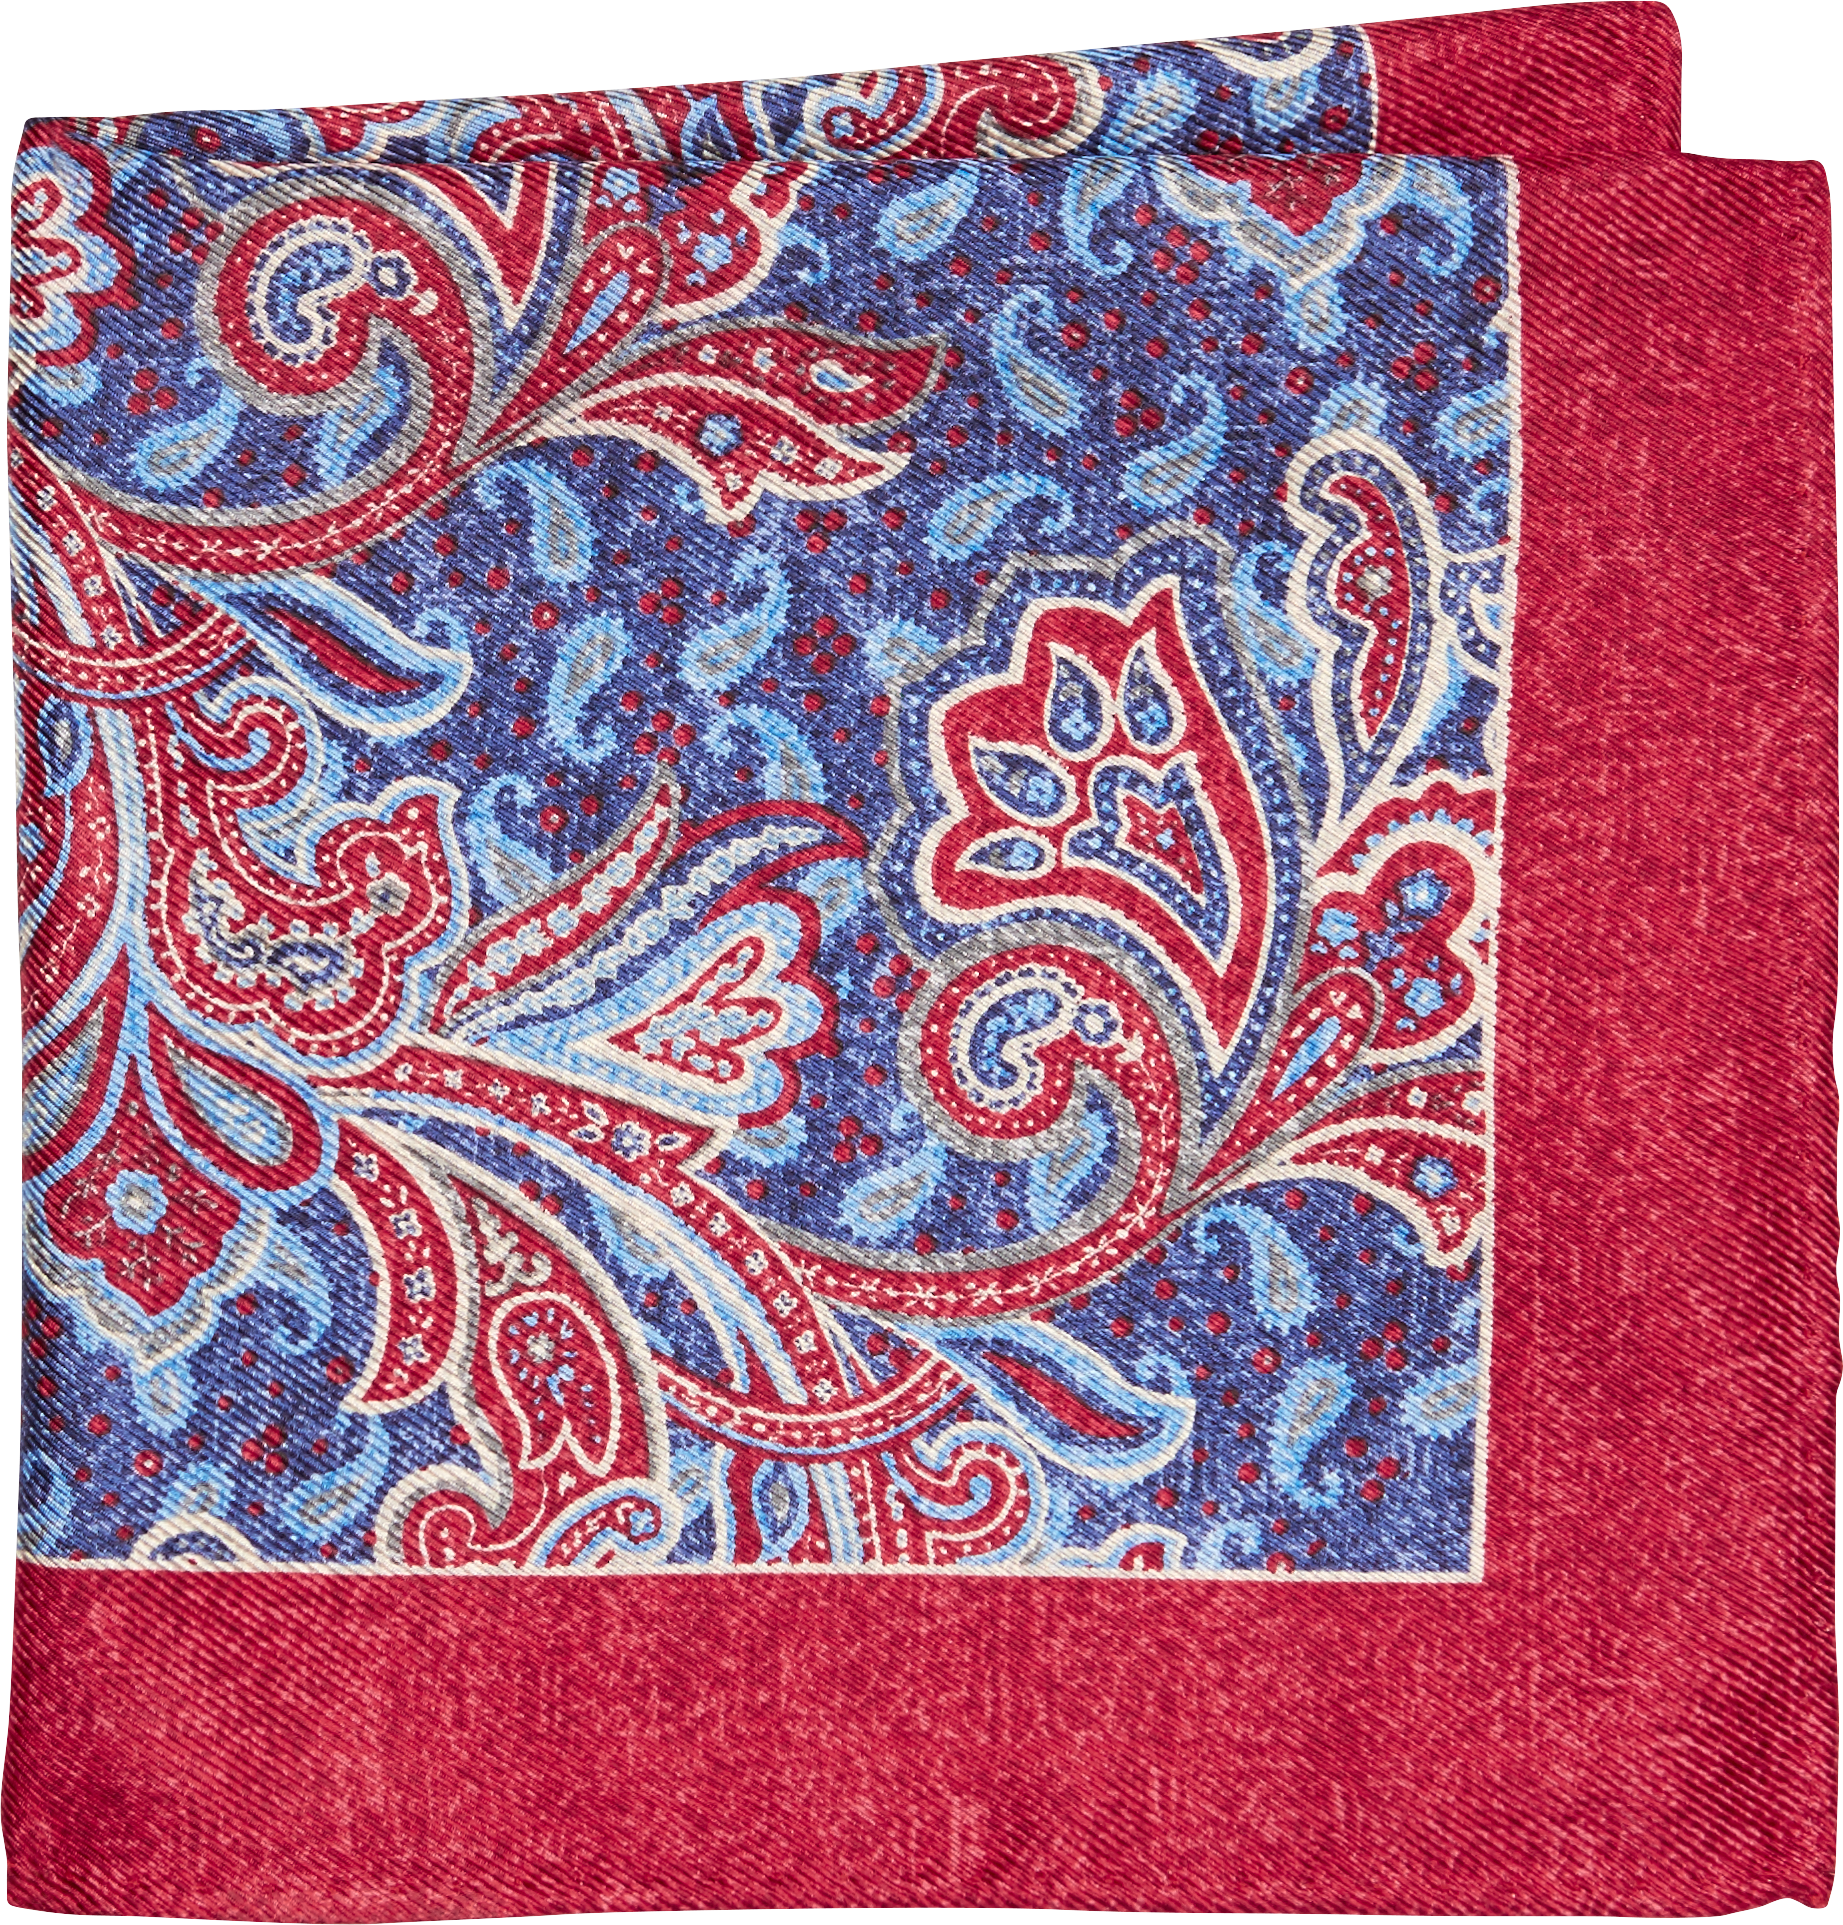 5d8702a12eb19 Joseph Abboud Paisley Pocket Square CLEARANCE - All Clearance | Jos ...